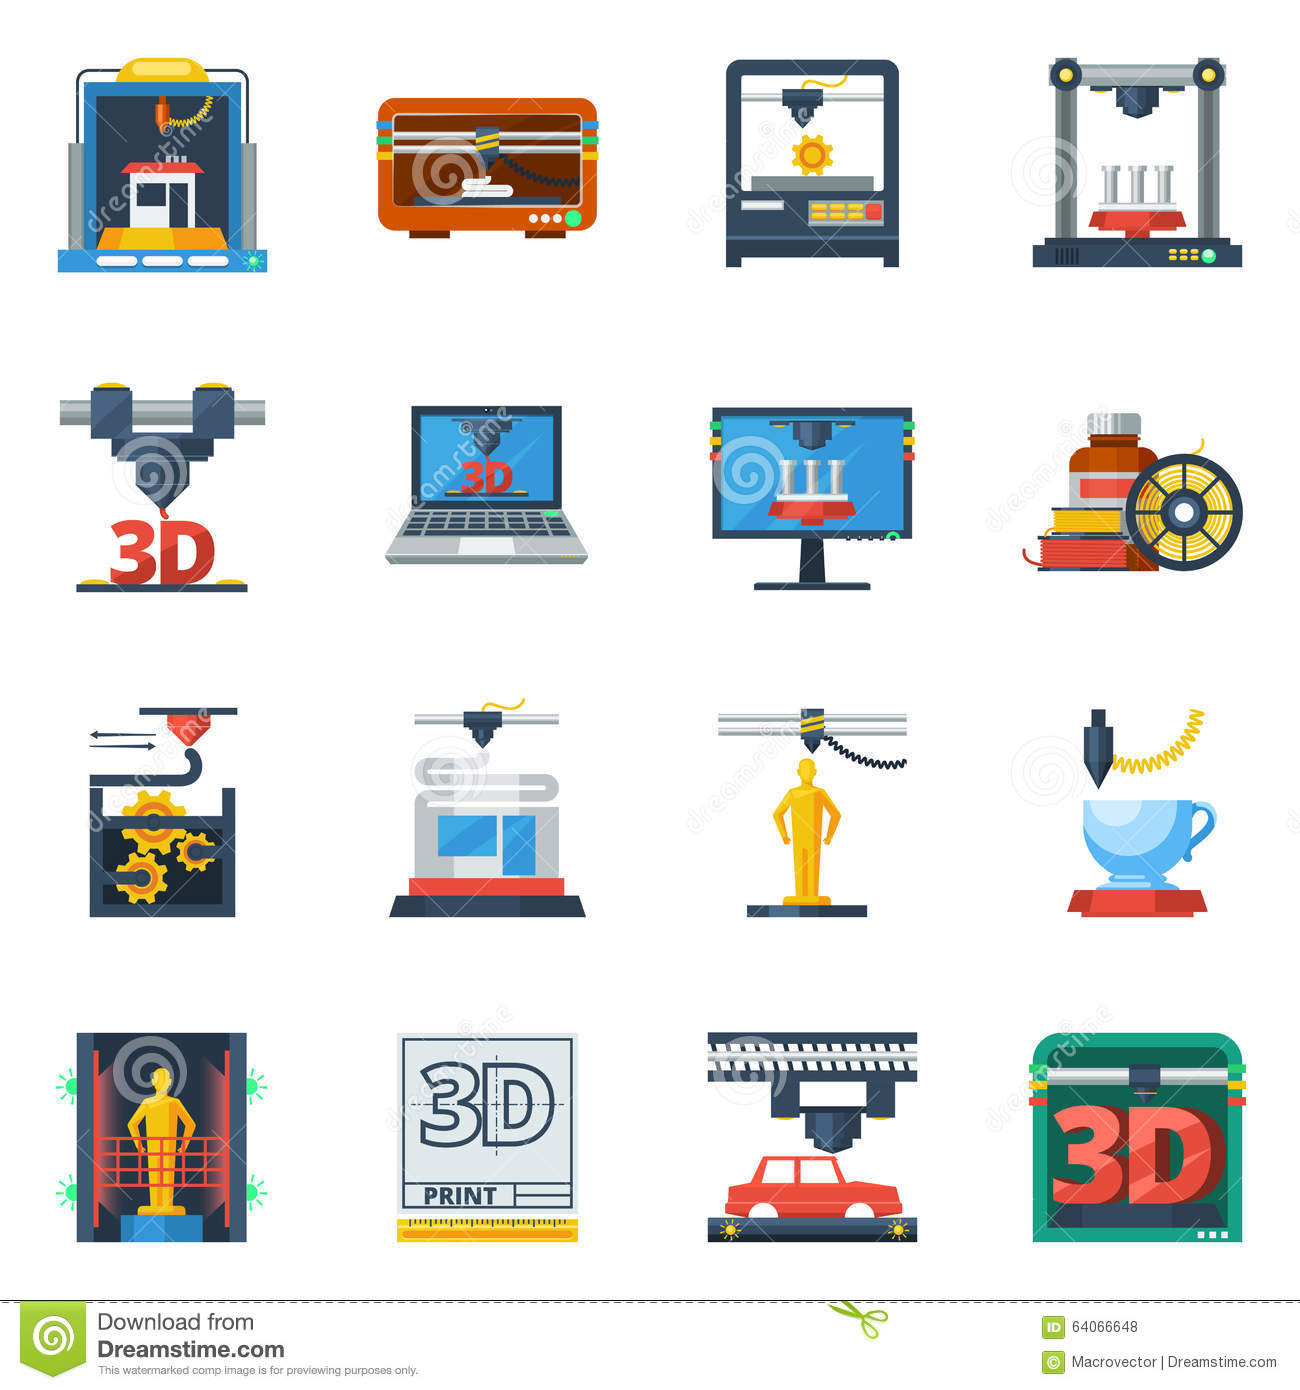 3D Printing Flat Icons Collection Stock Vector - Illustration of